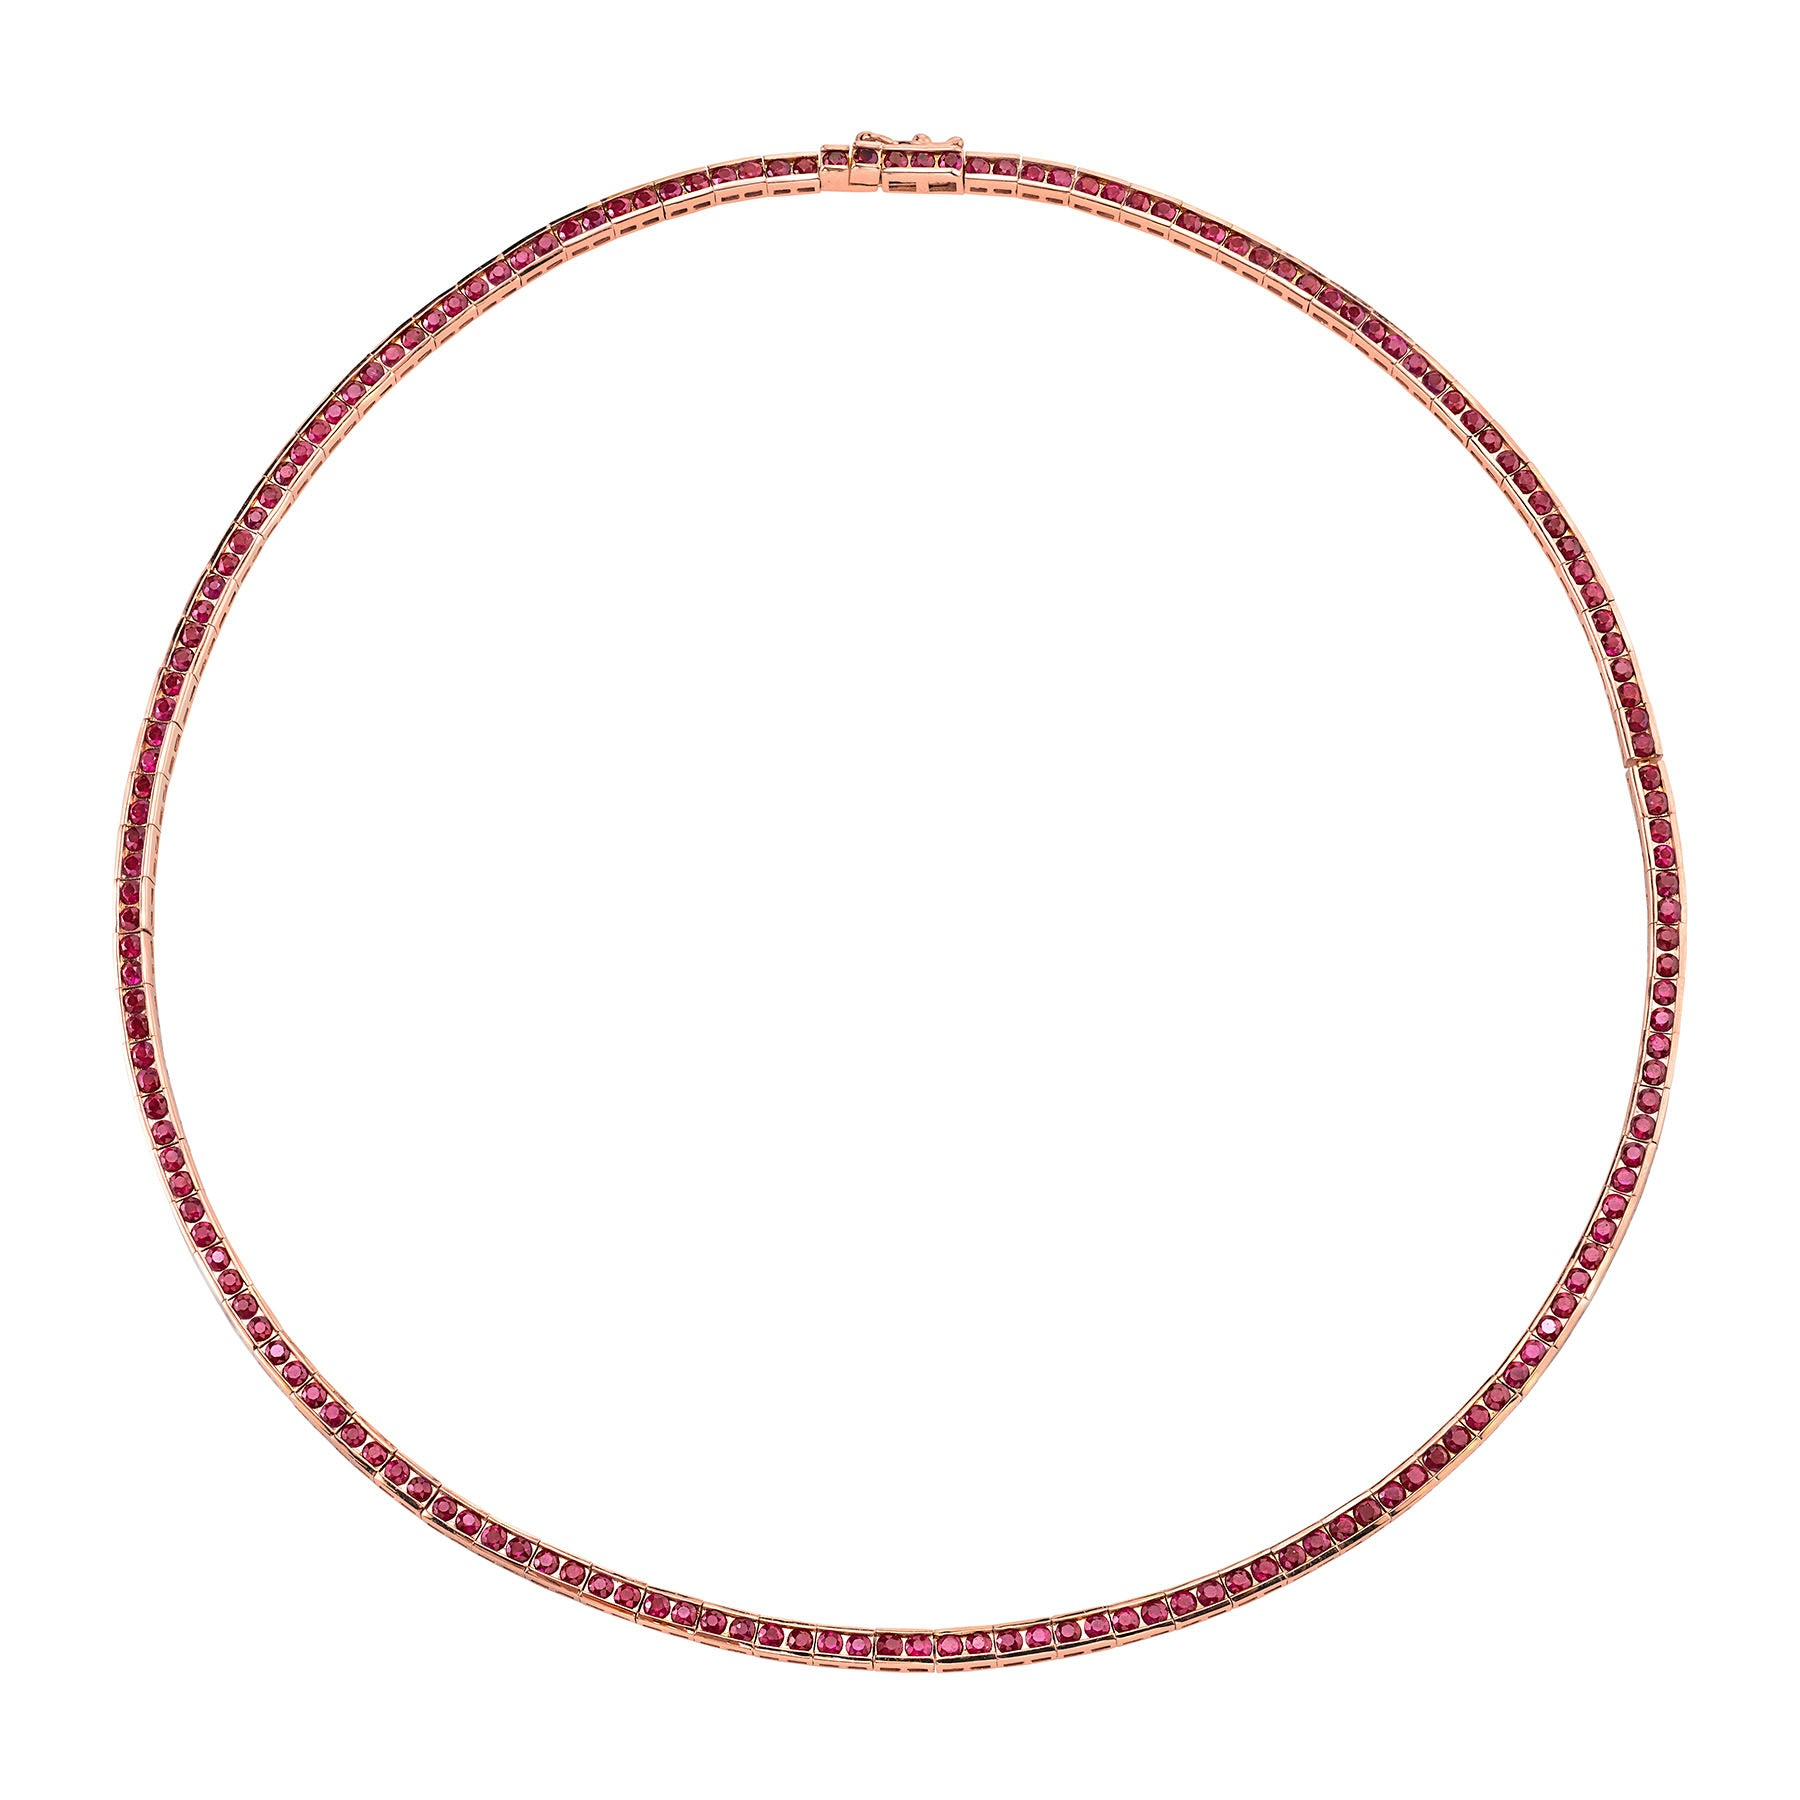 RUBY CHANNEL SET NECKLACE